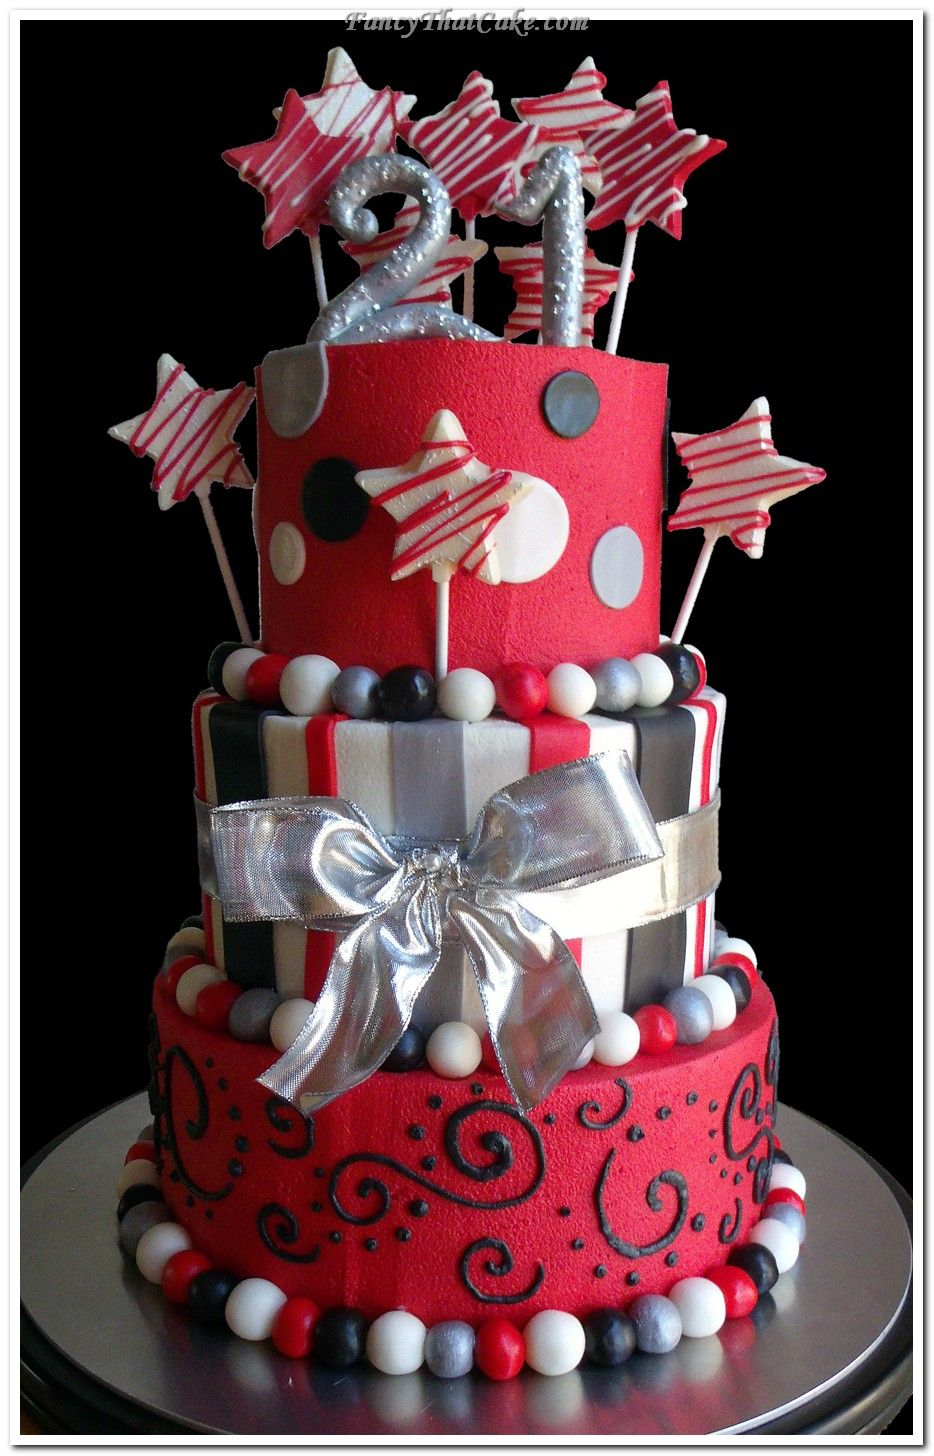 Phenomenal Black And Silver Cake Red Black And Silver 21St Birthday Cake Funny Birthday Cards Online Inifodamsfinfo